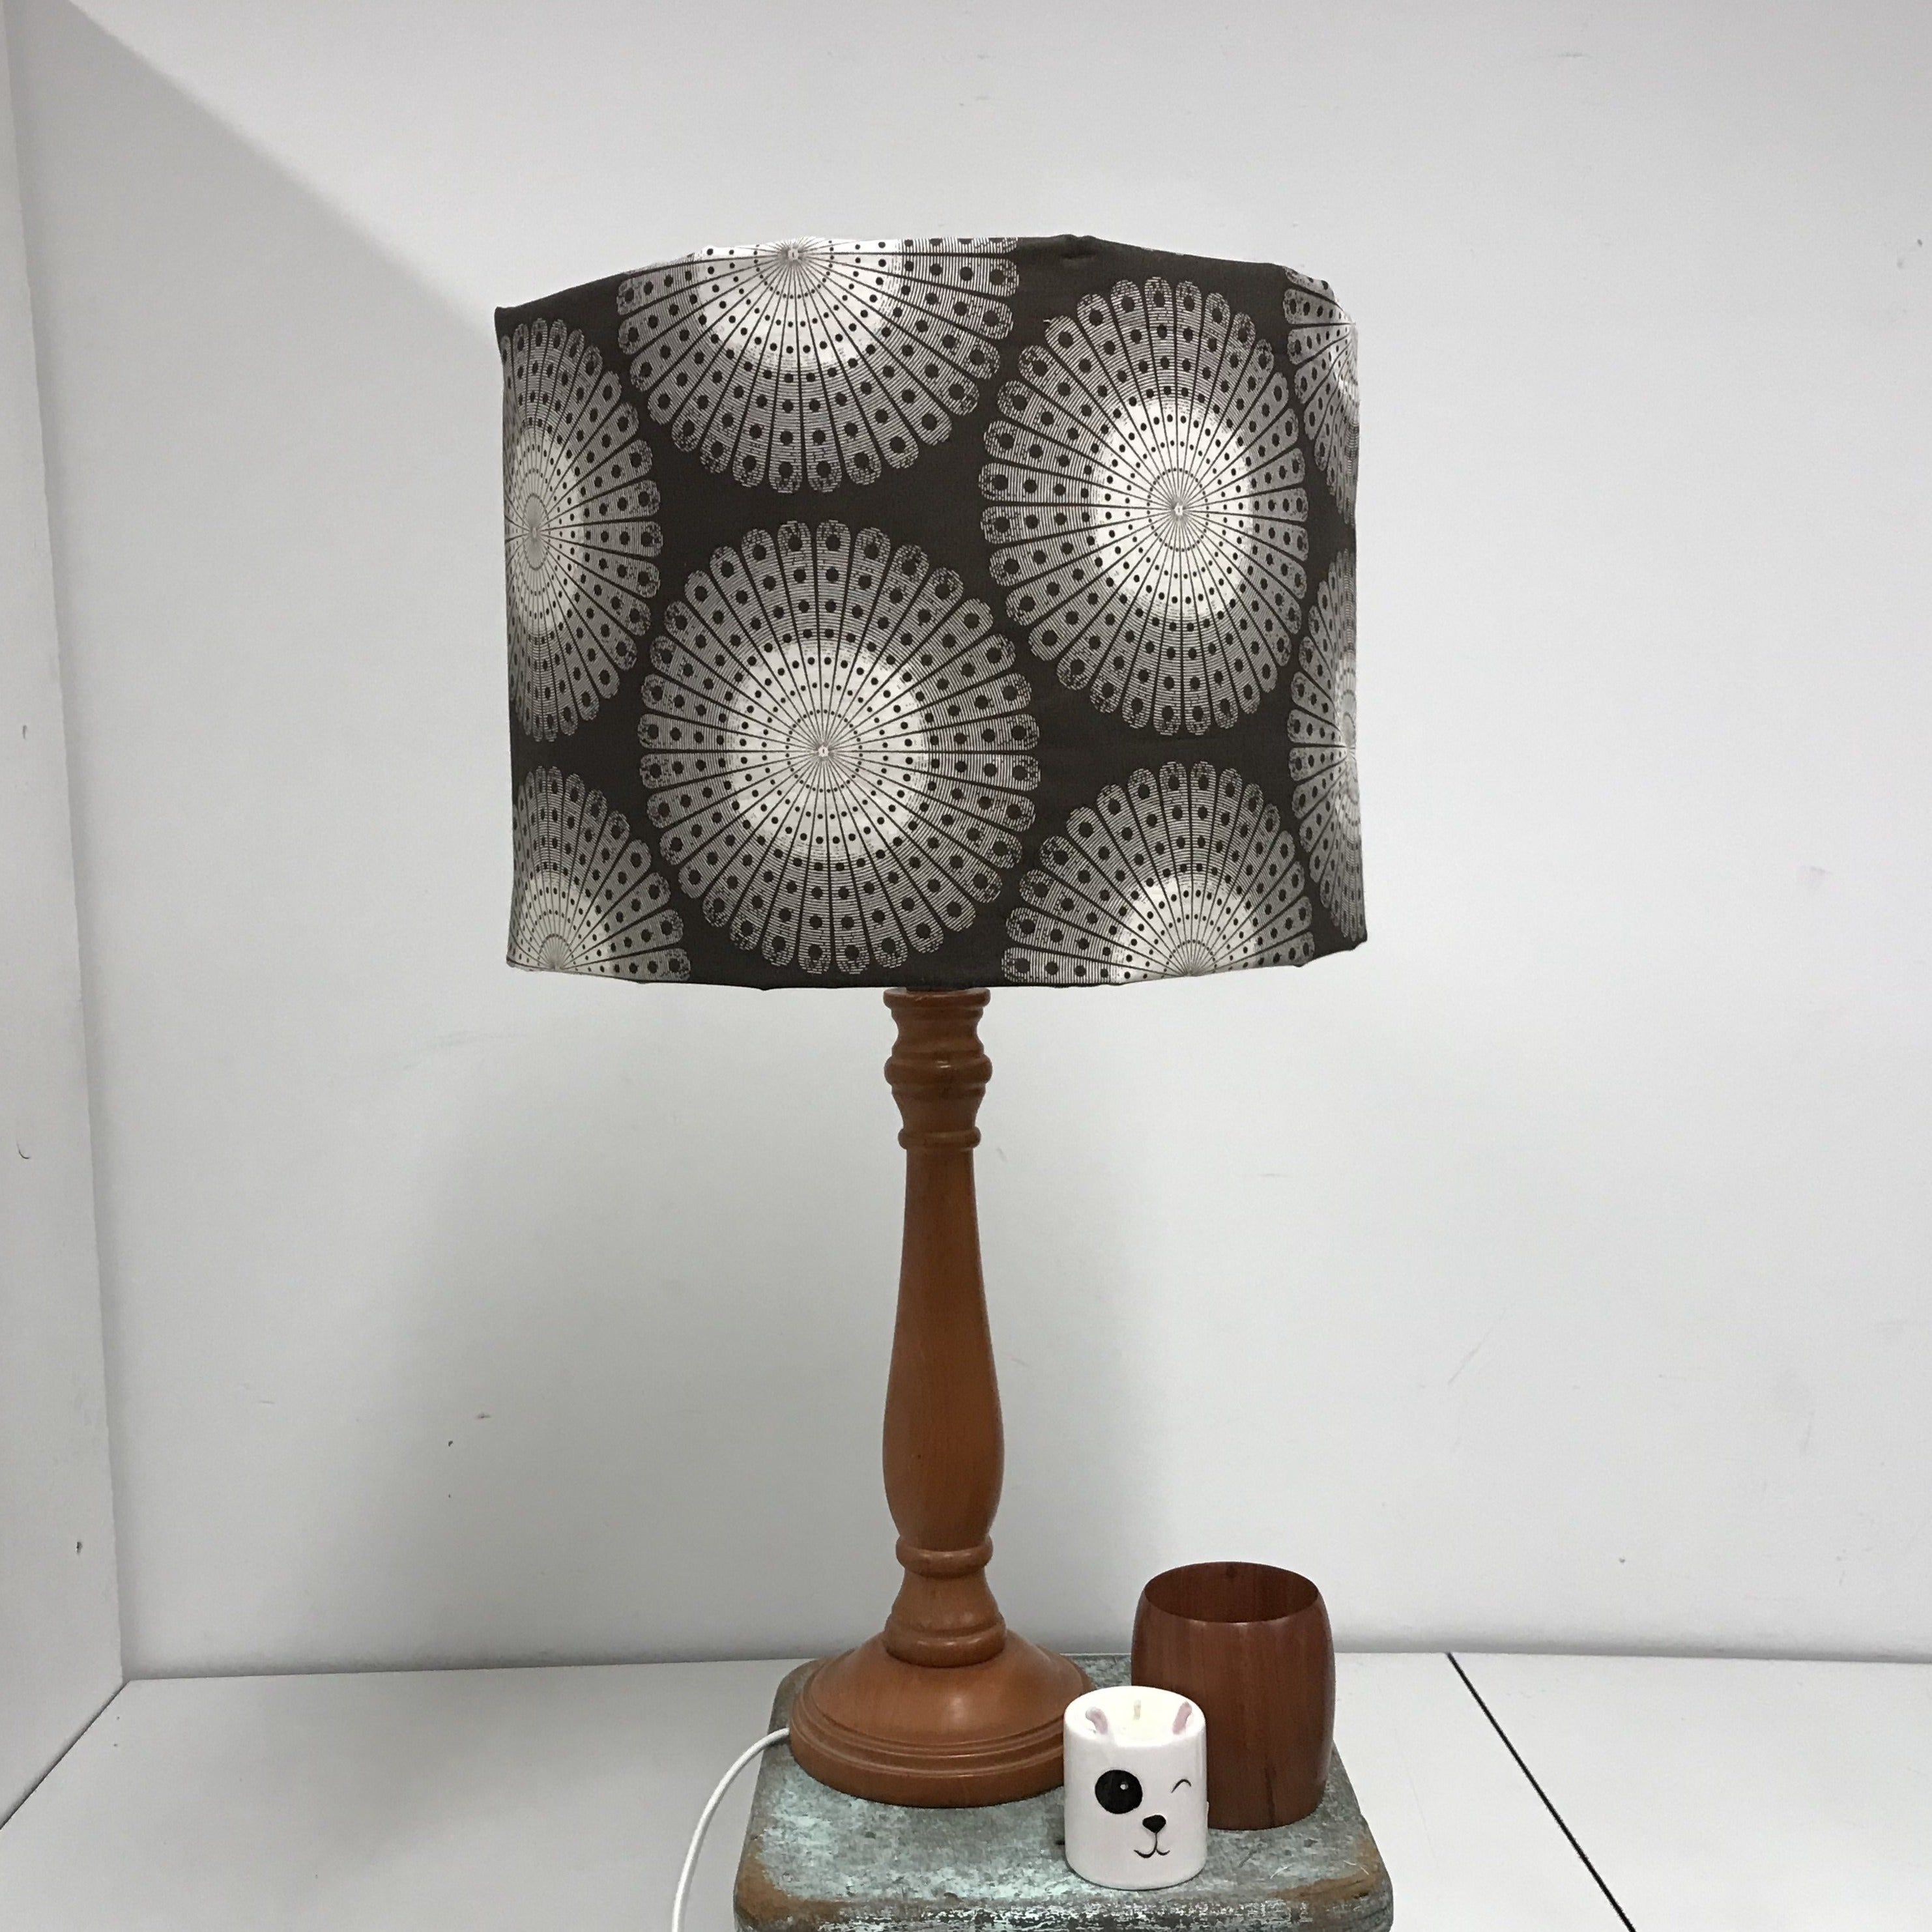 Custom Lamp Shade only - Sphere Bursts in Mocha